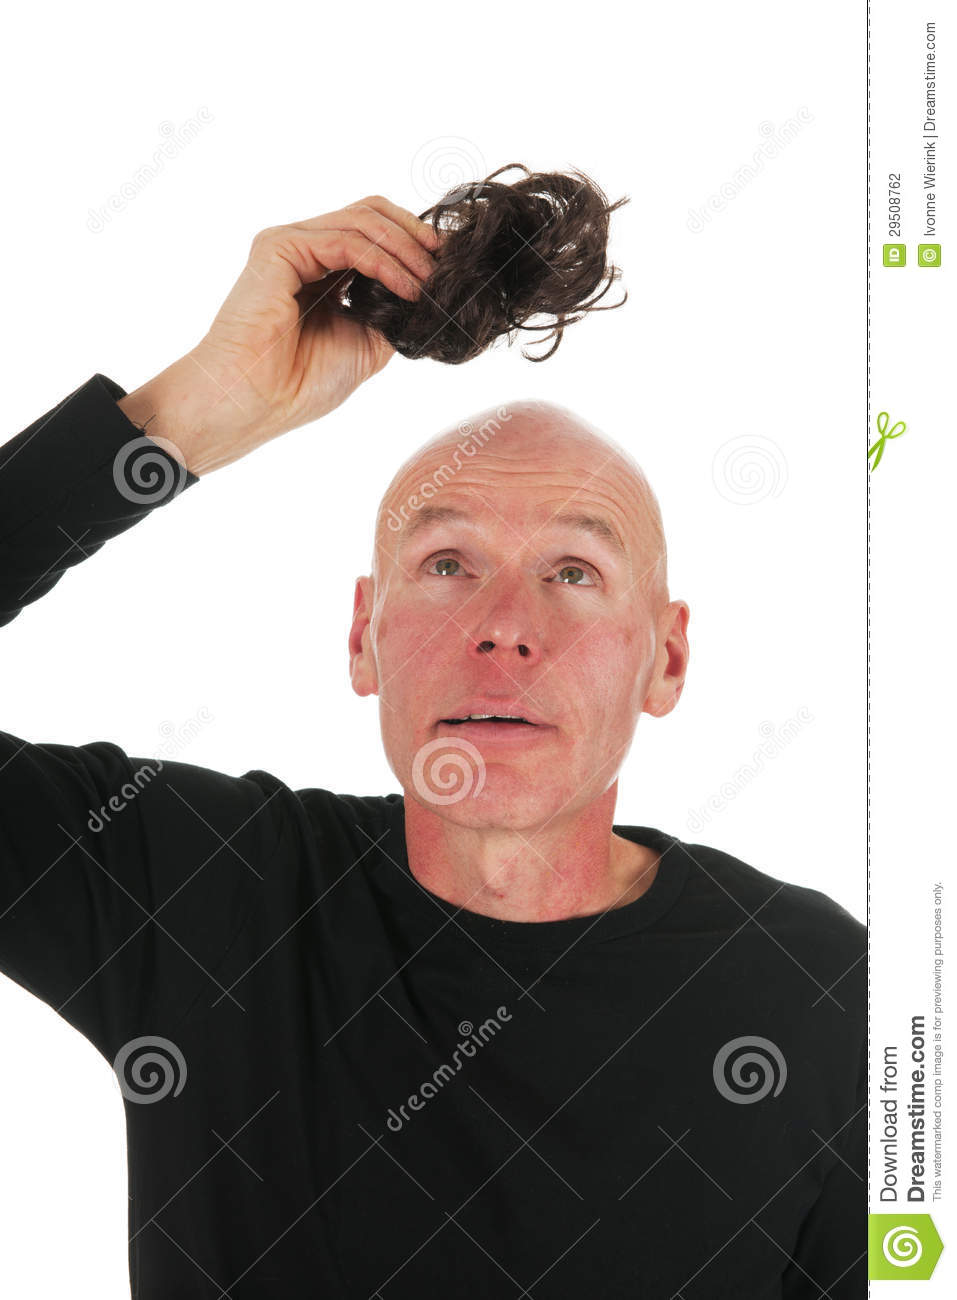 dae1747a9f7a3 New hair for bald man stock photo. Image of adult